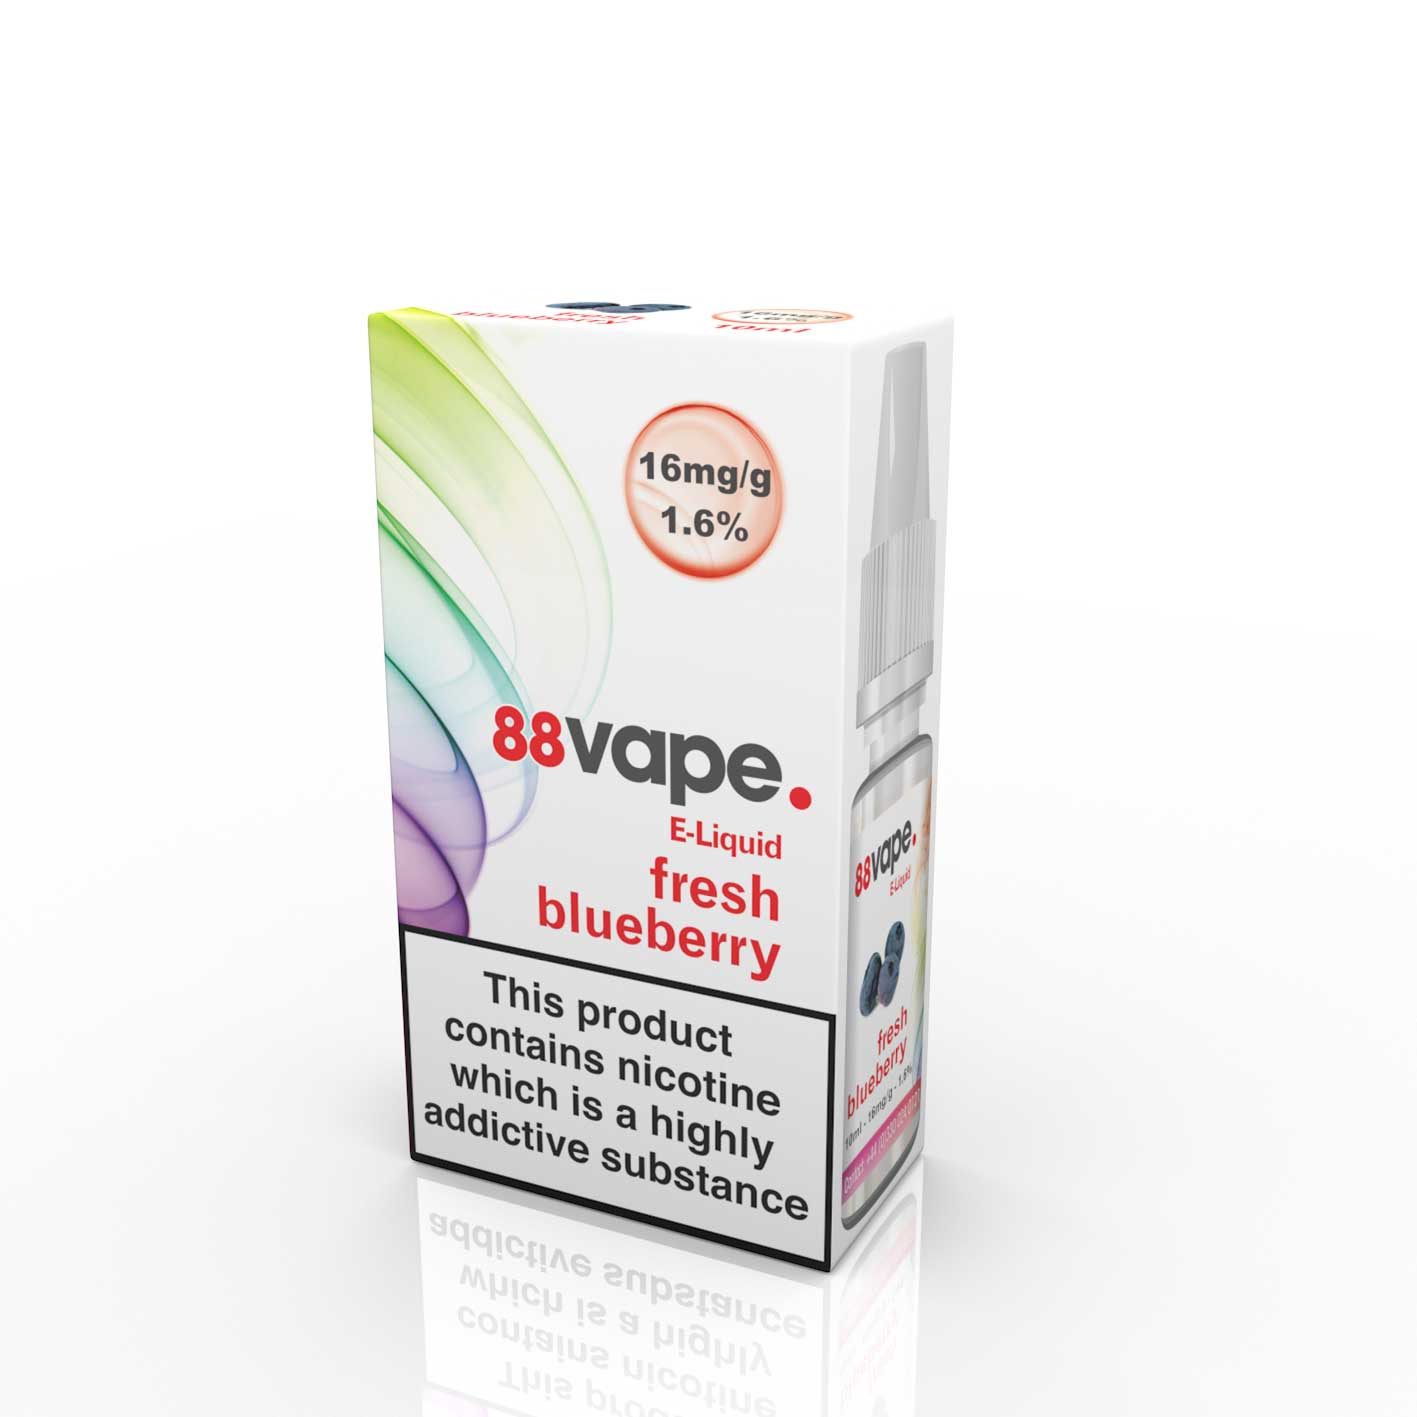 Compare prices for 88Vape E-Liquid Fresh Blueberry 10ml - 16mg Nicotine - Extra Value 20 Pack